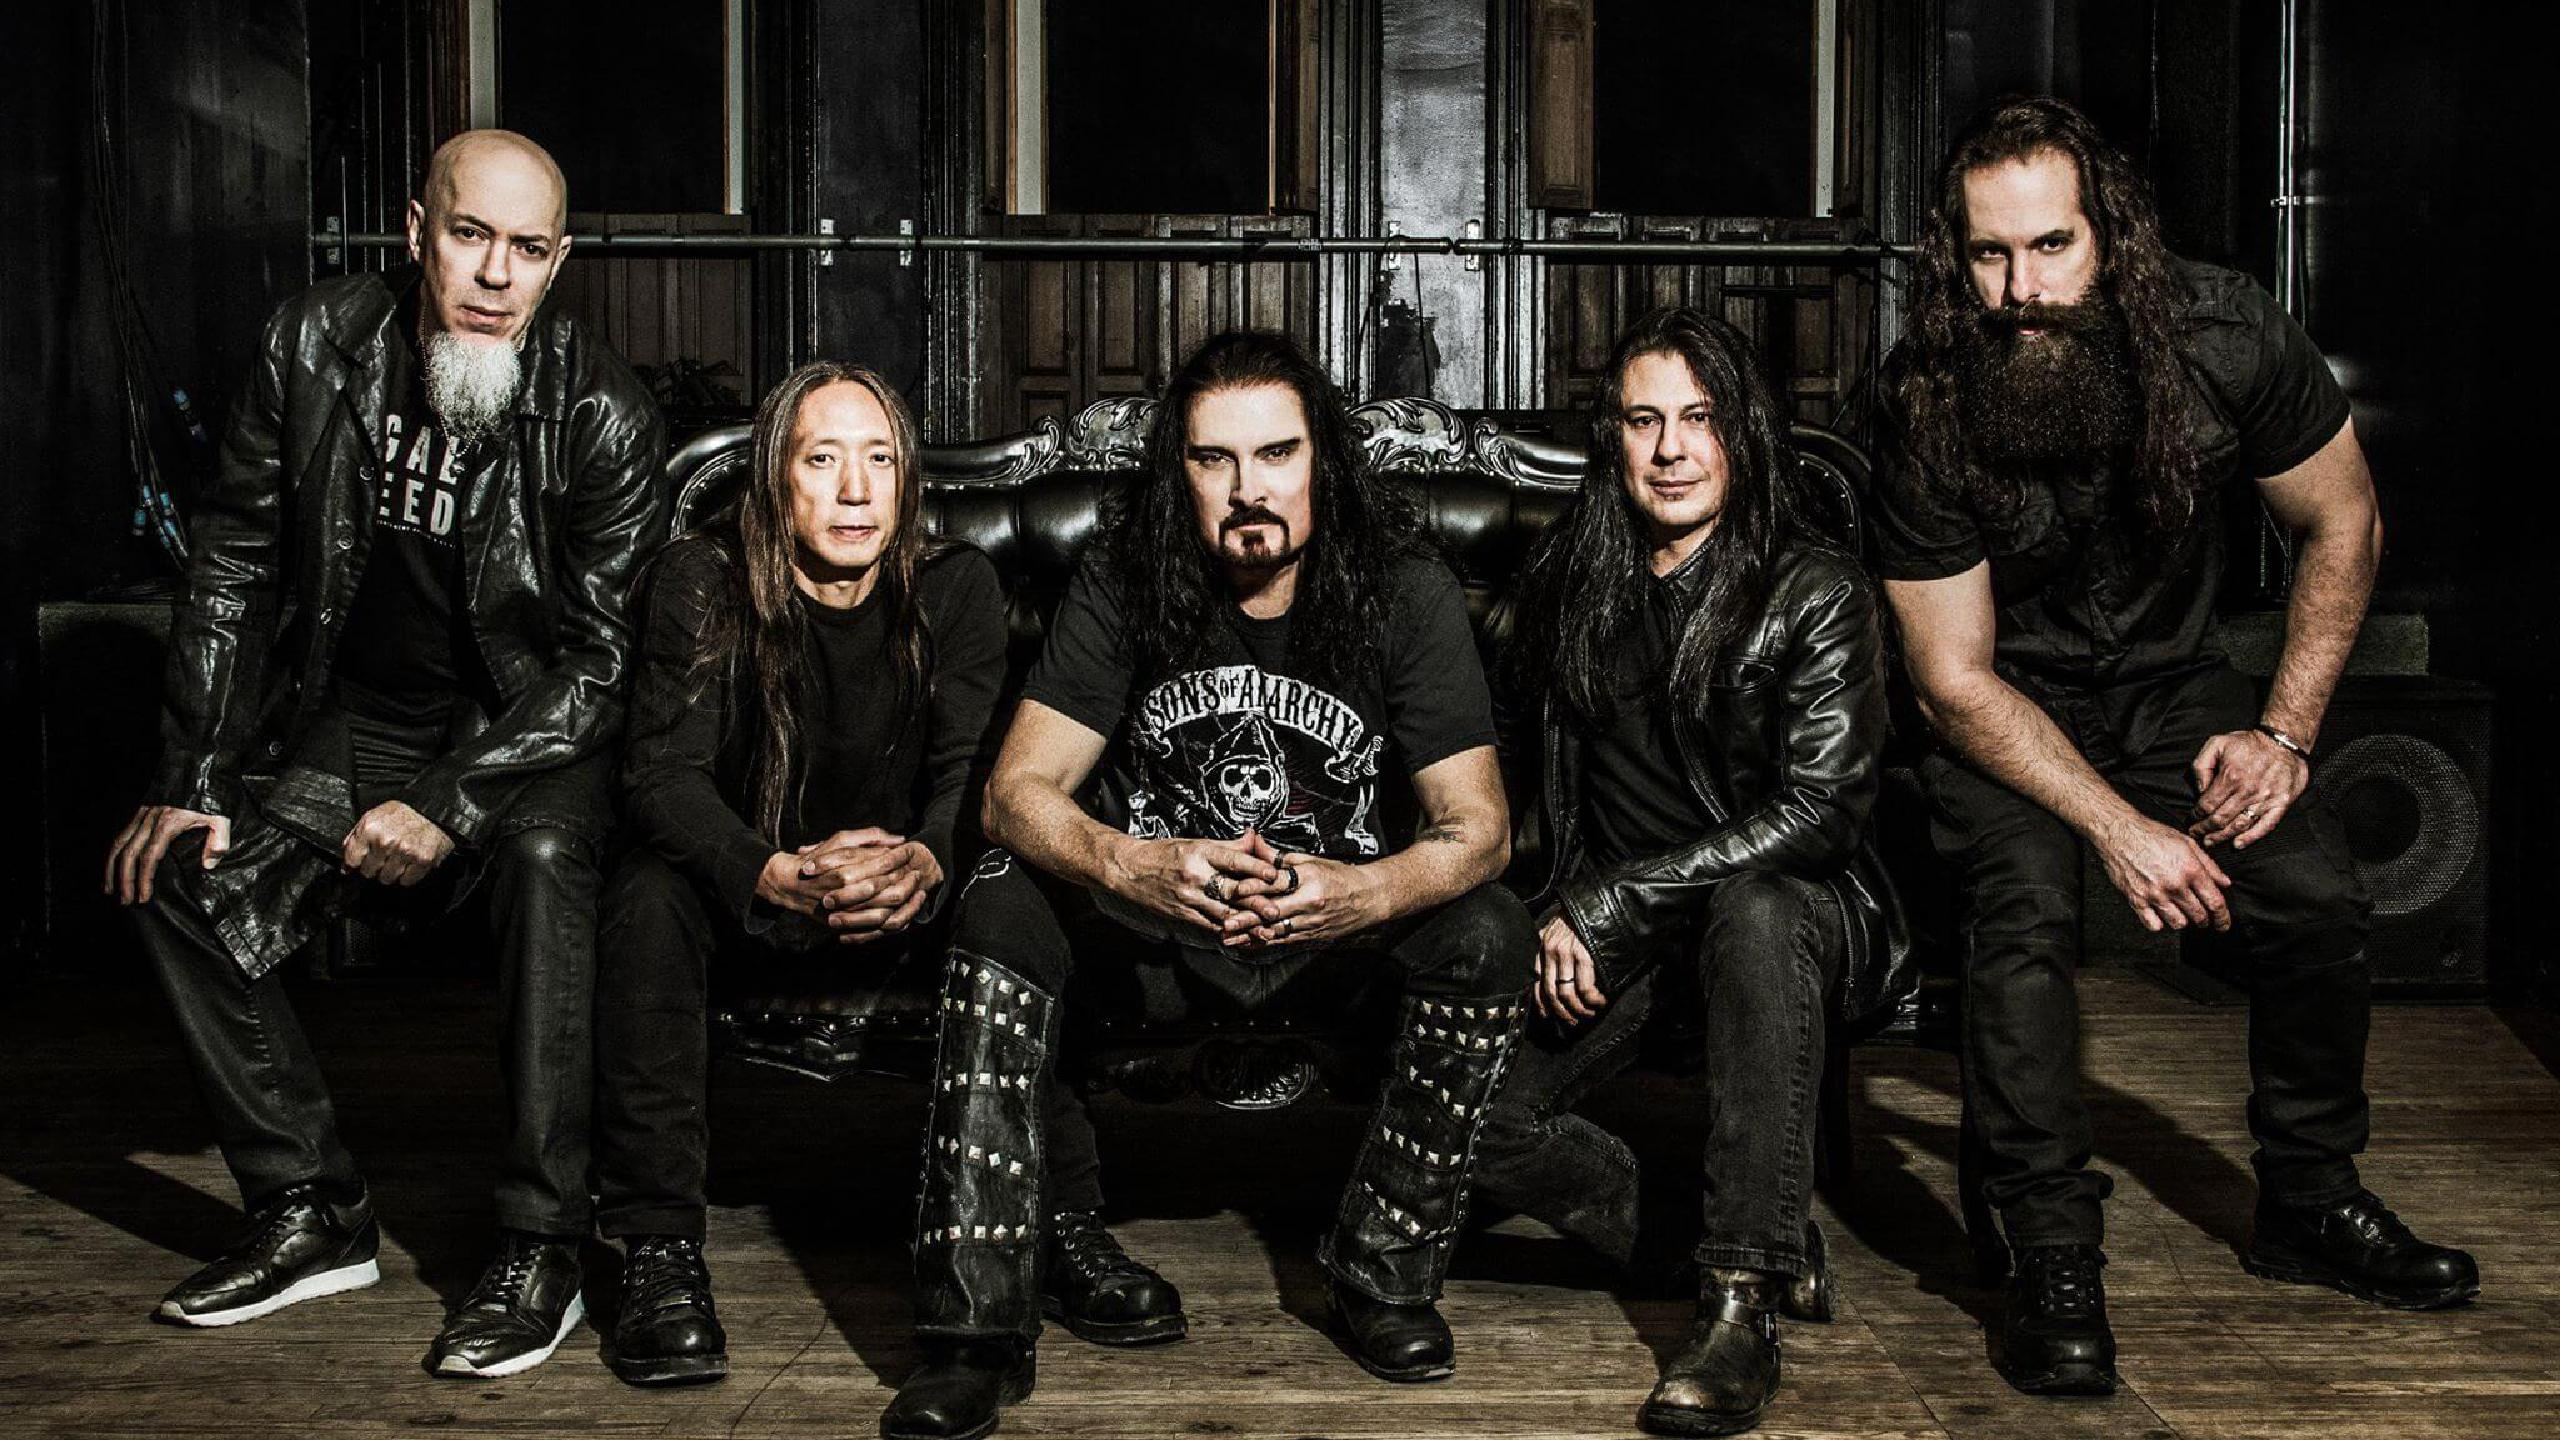 Gana entradas al regreso de Dream Theater a Chile